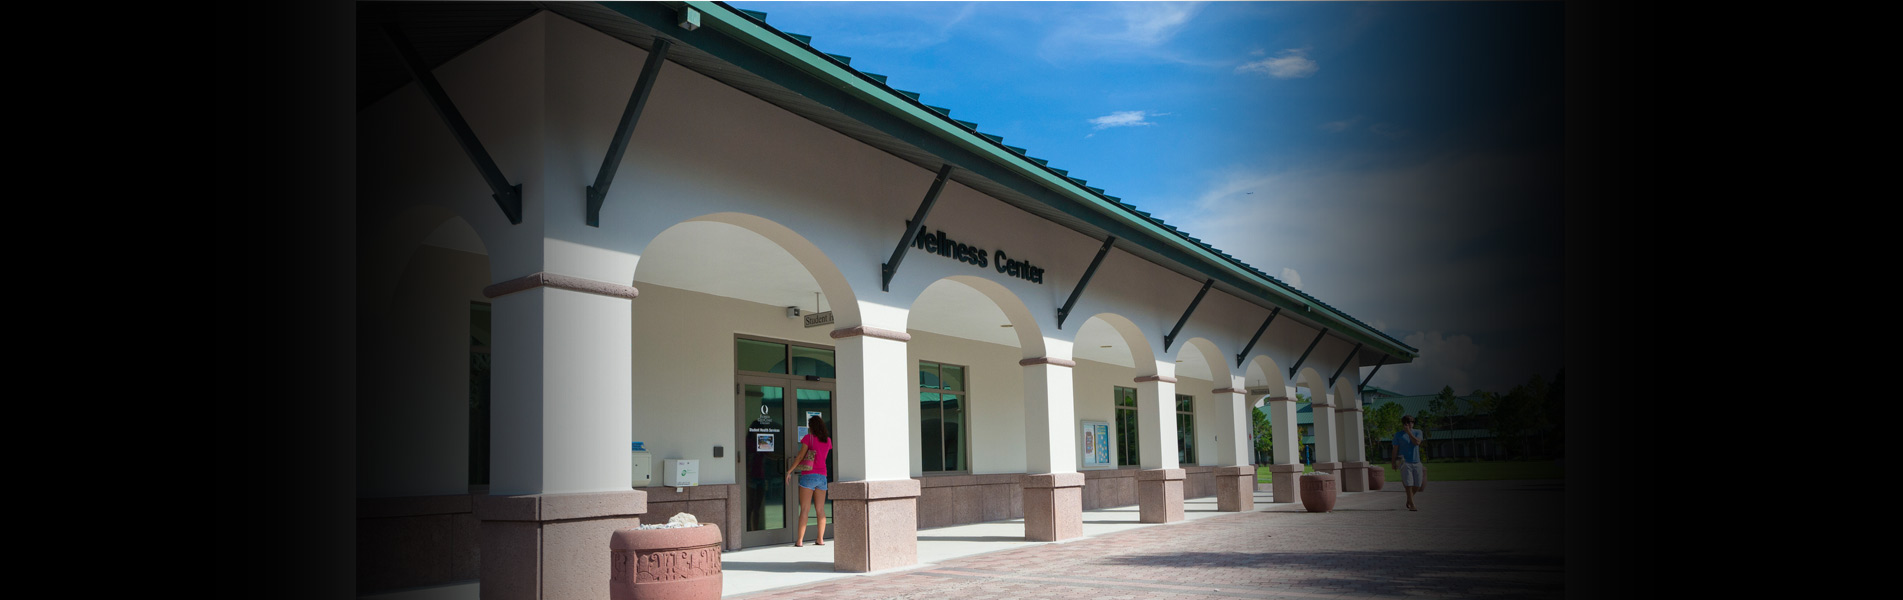 FGCU Wellness Center